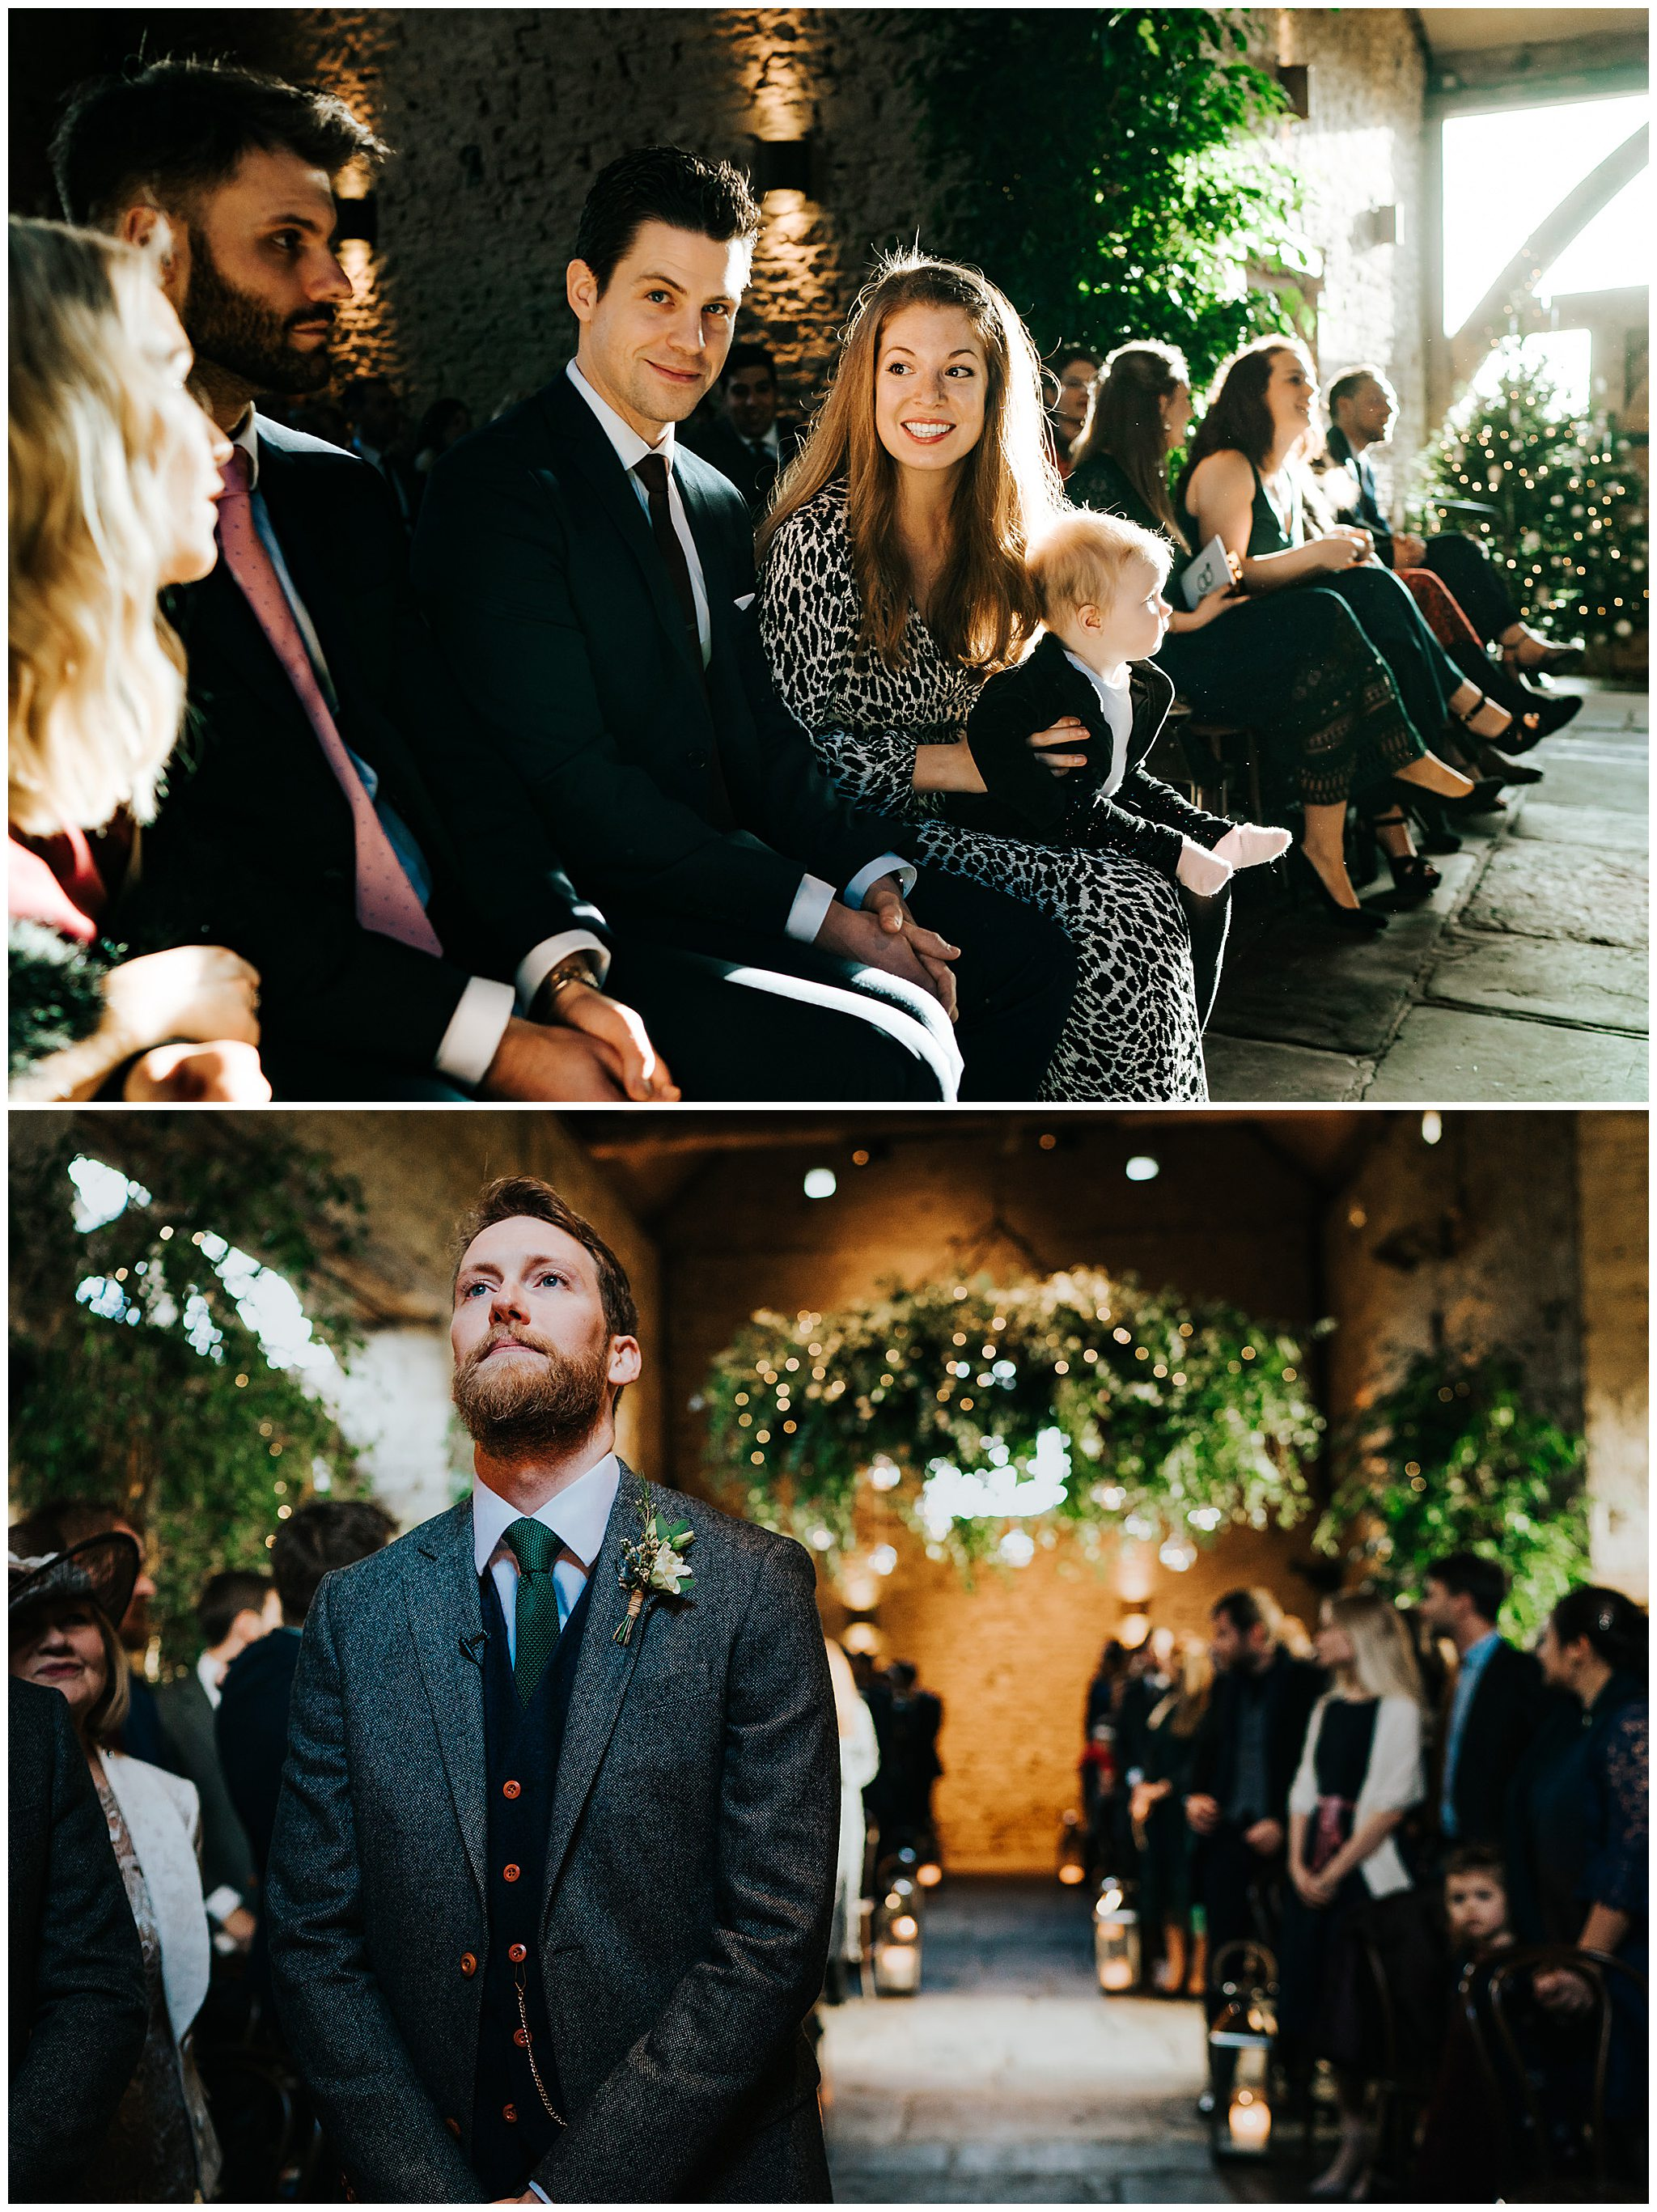 Cripps barn winter wedding